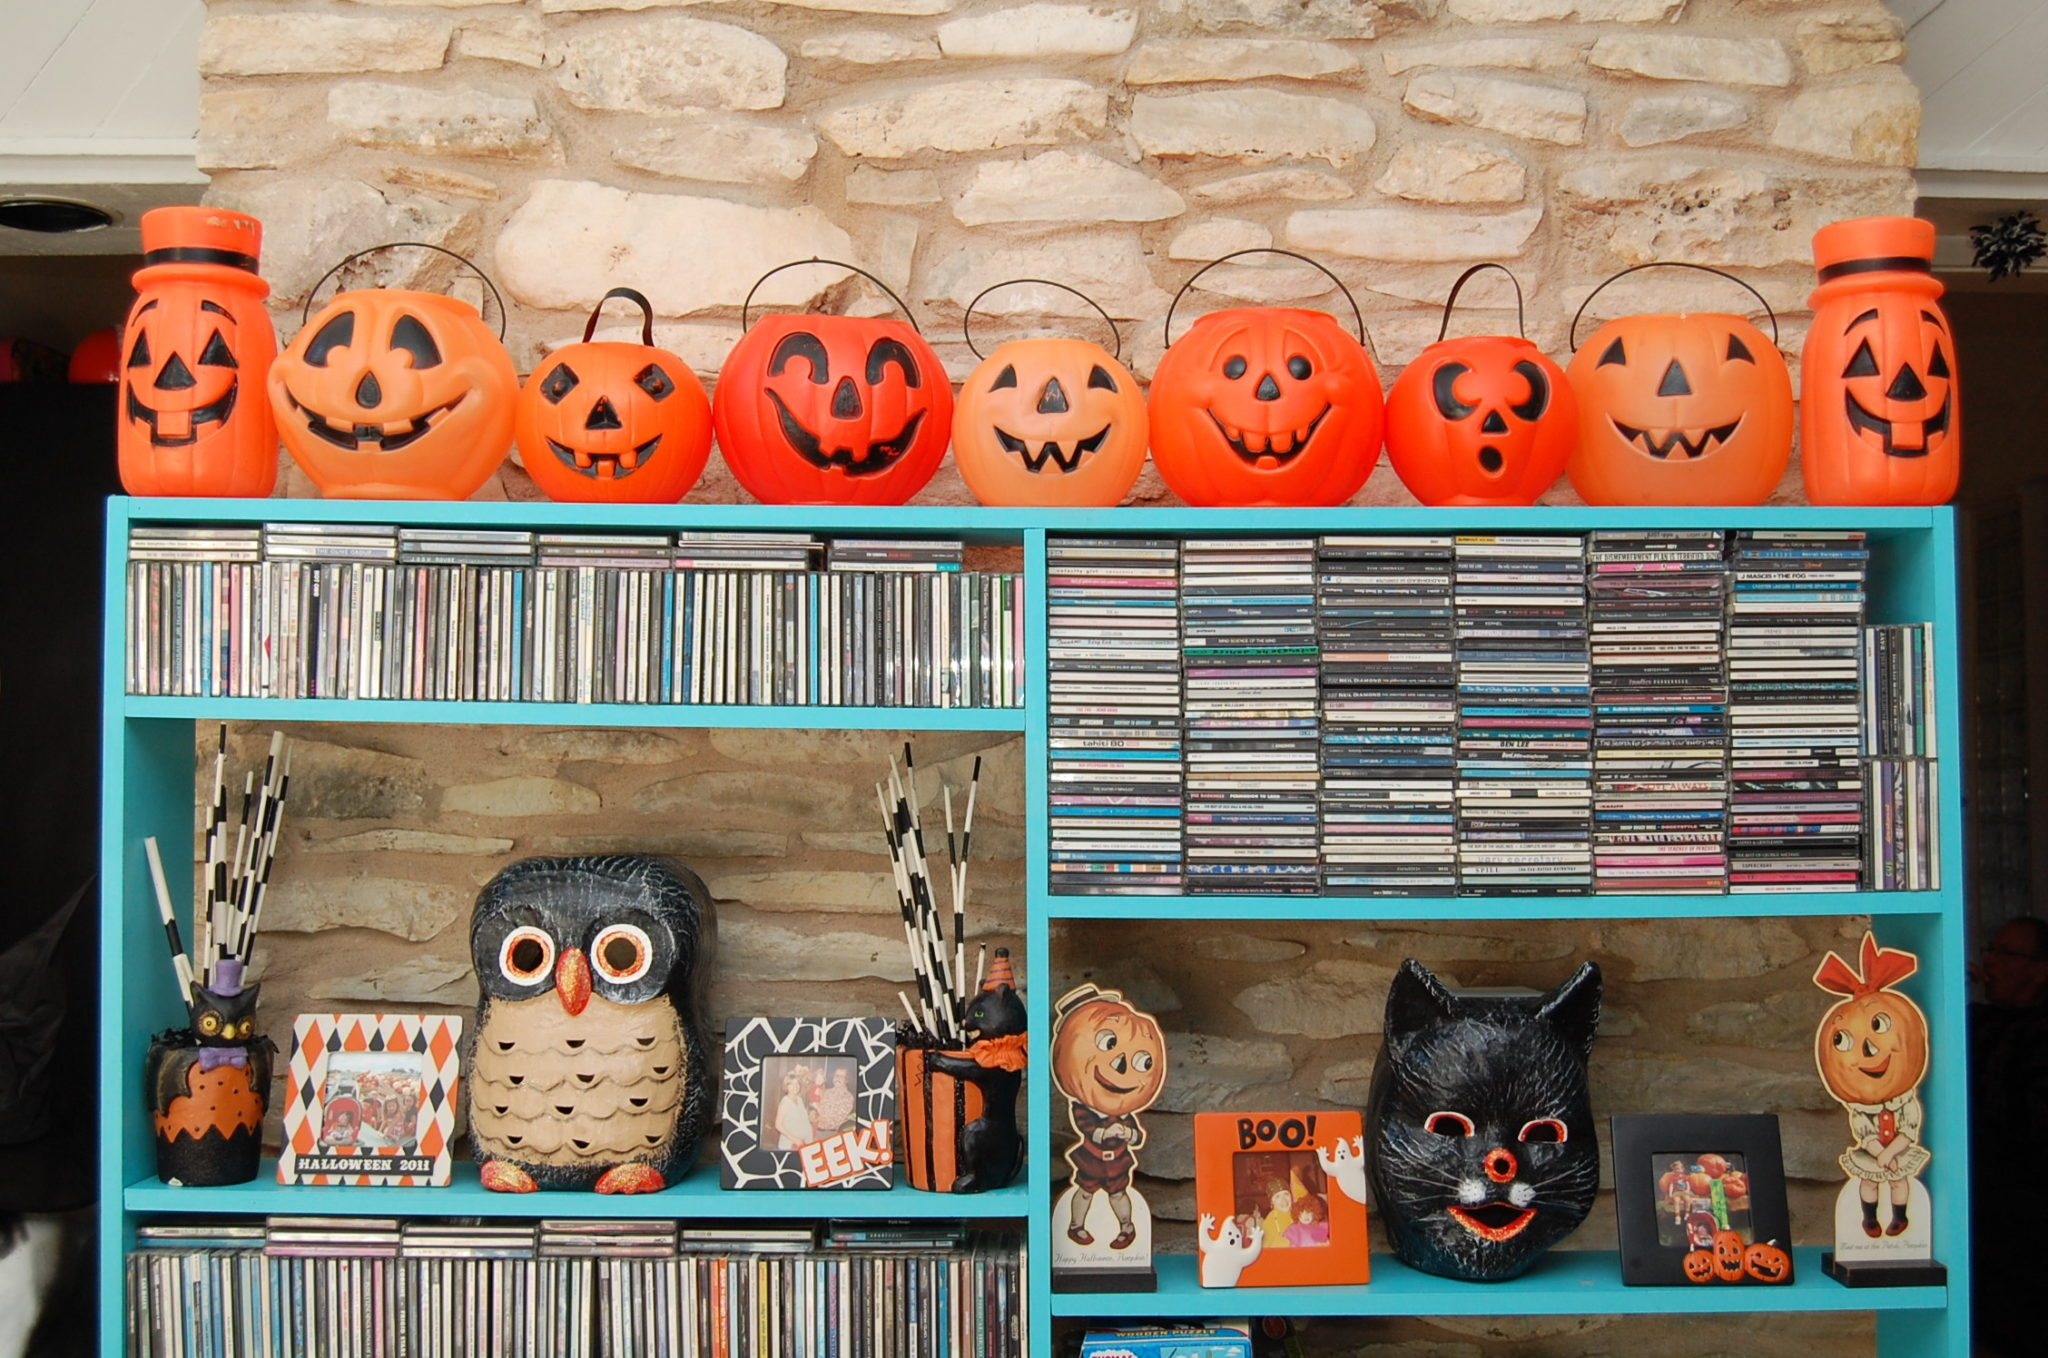 Plastic Halloween pumpkins on a shelf